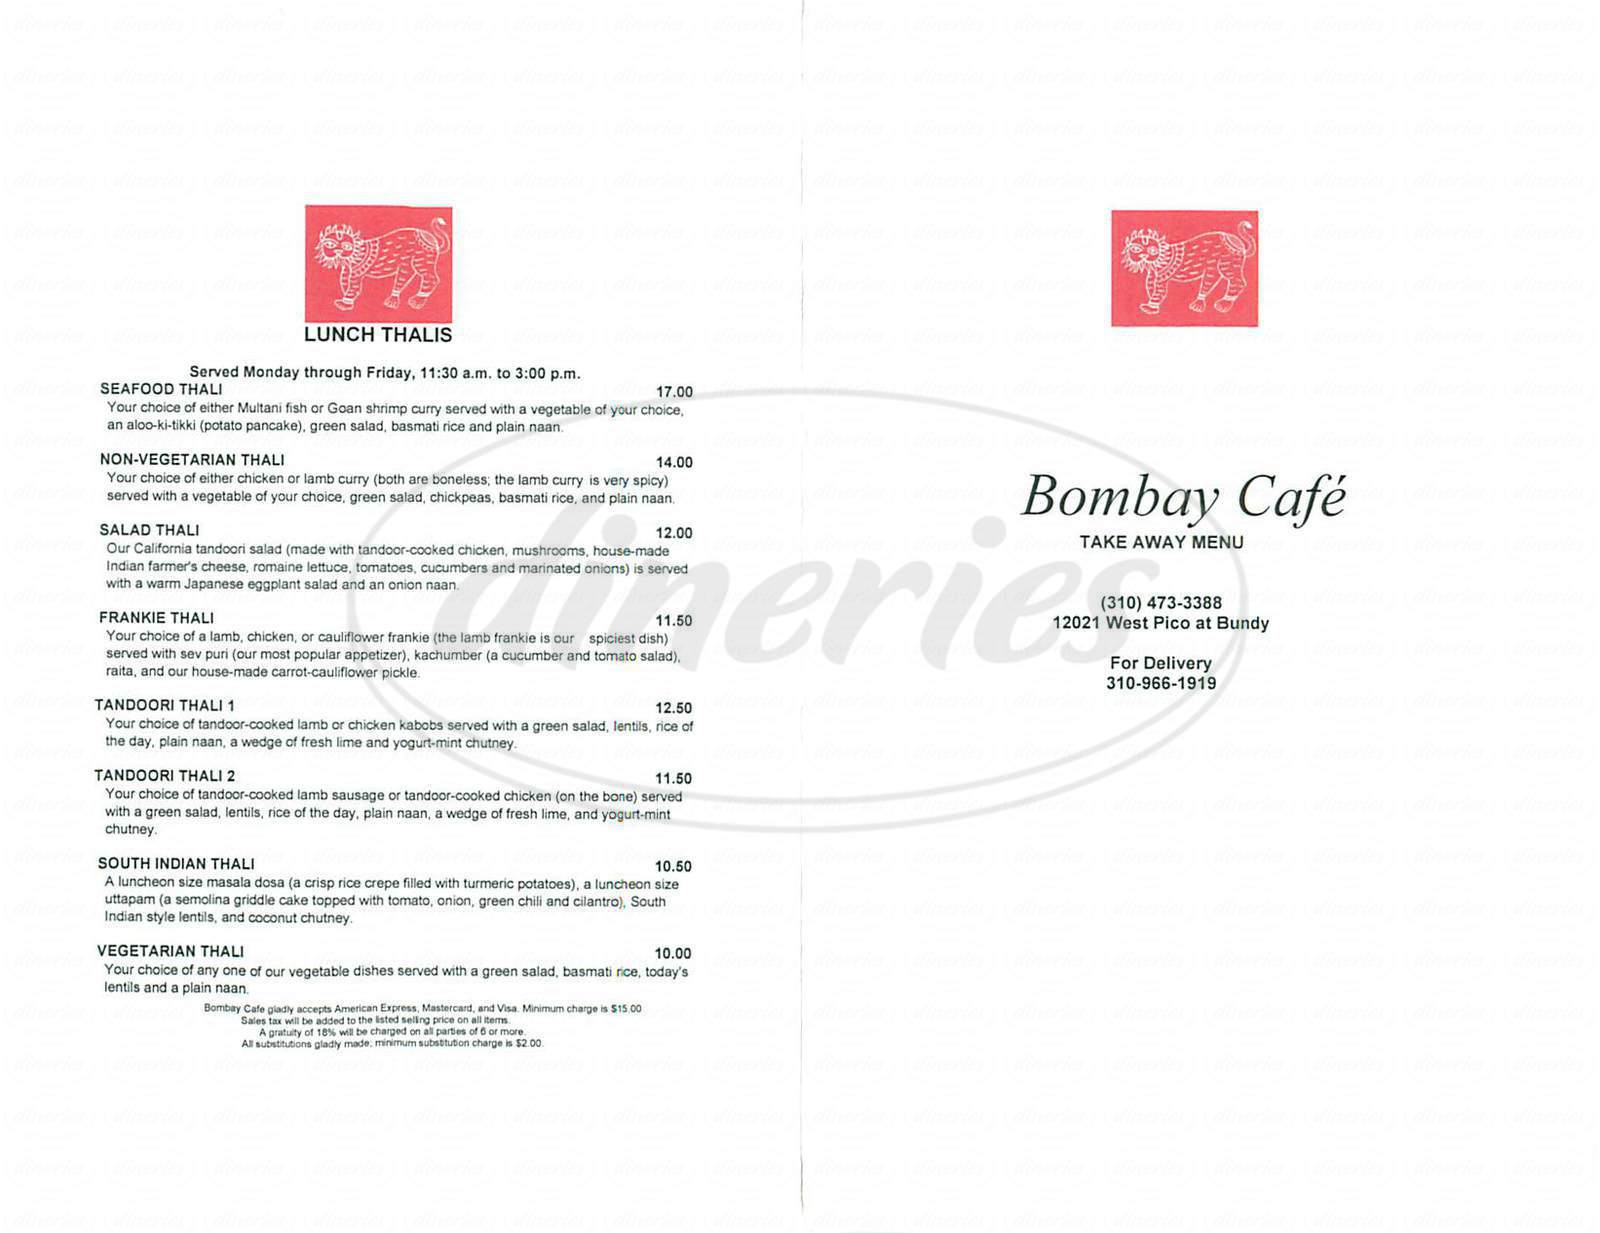 menu for Bombay Café